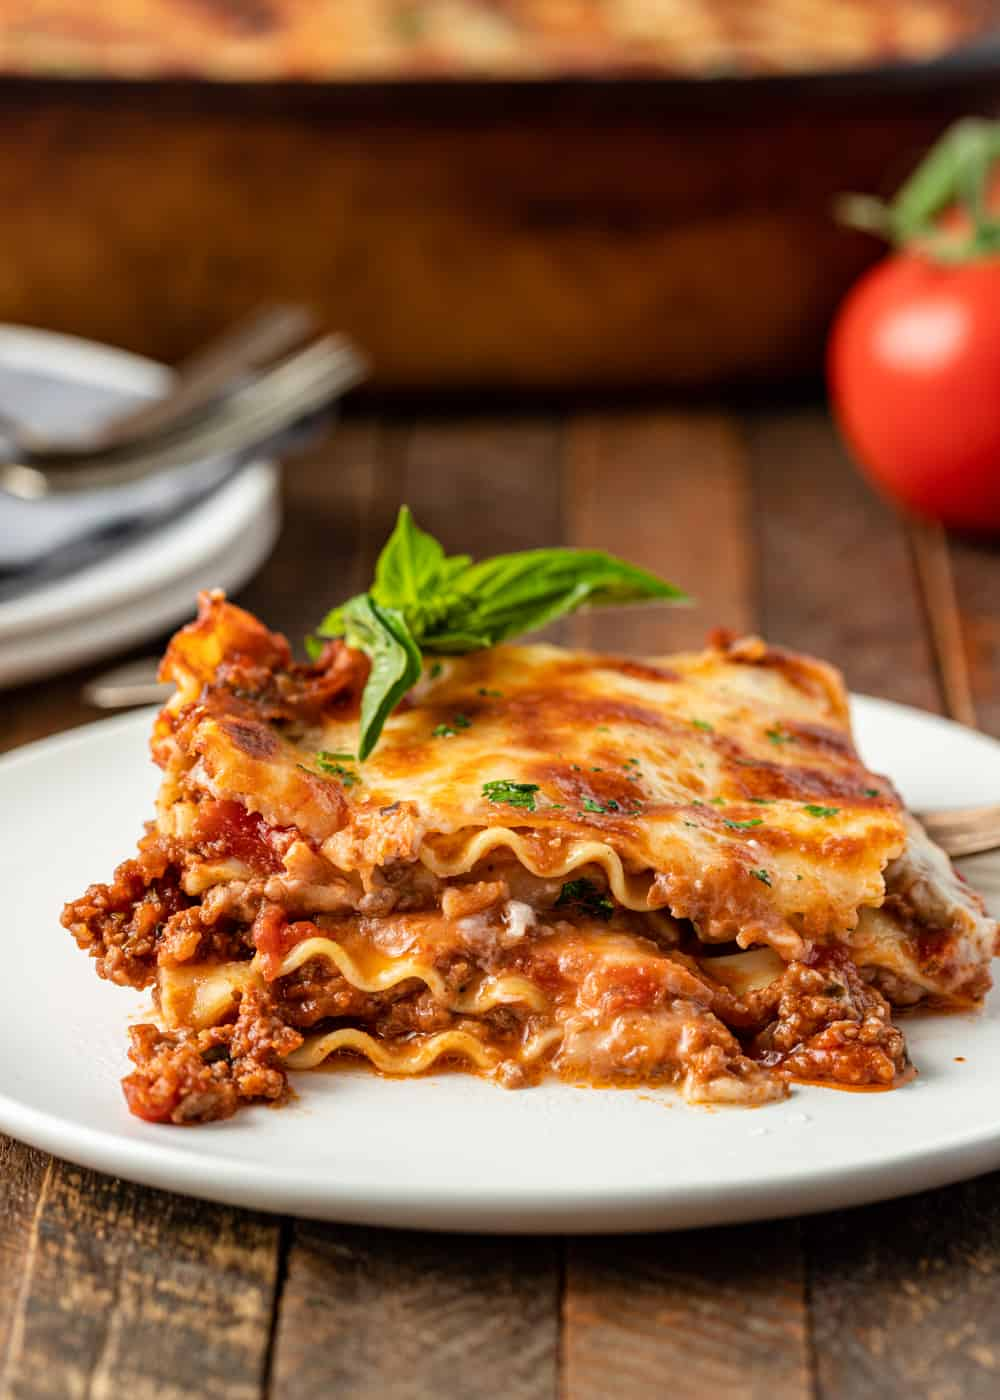 serving of lasagna bolognese on a white plate with a baking dish, tomato, and additional plates and utensils in the background